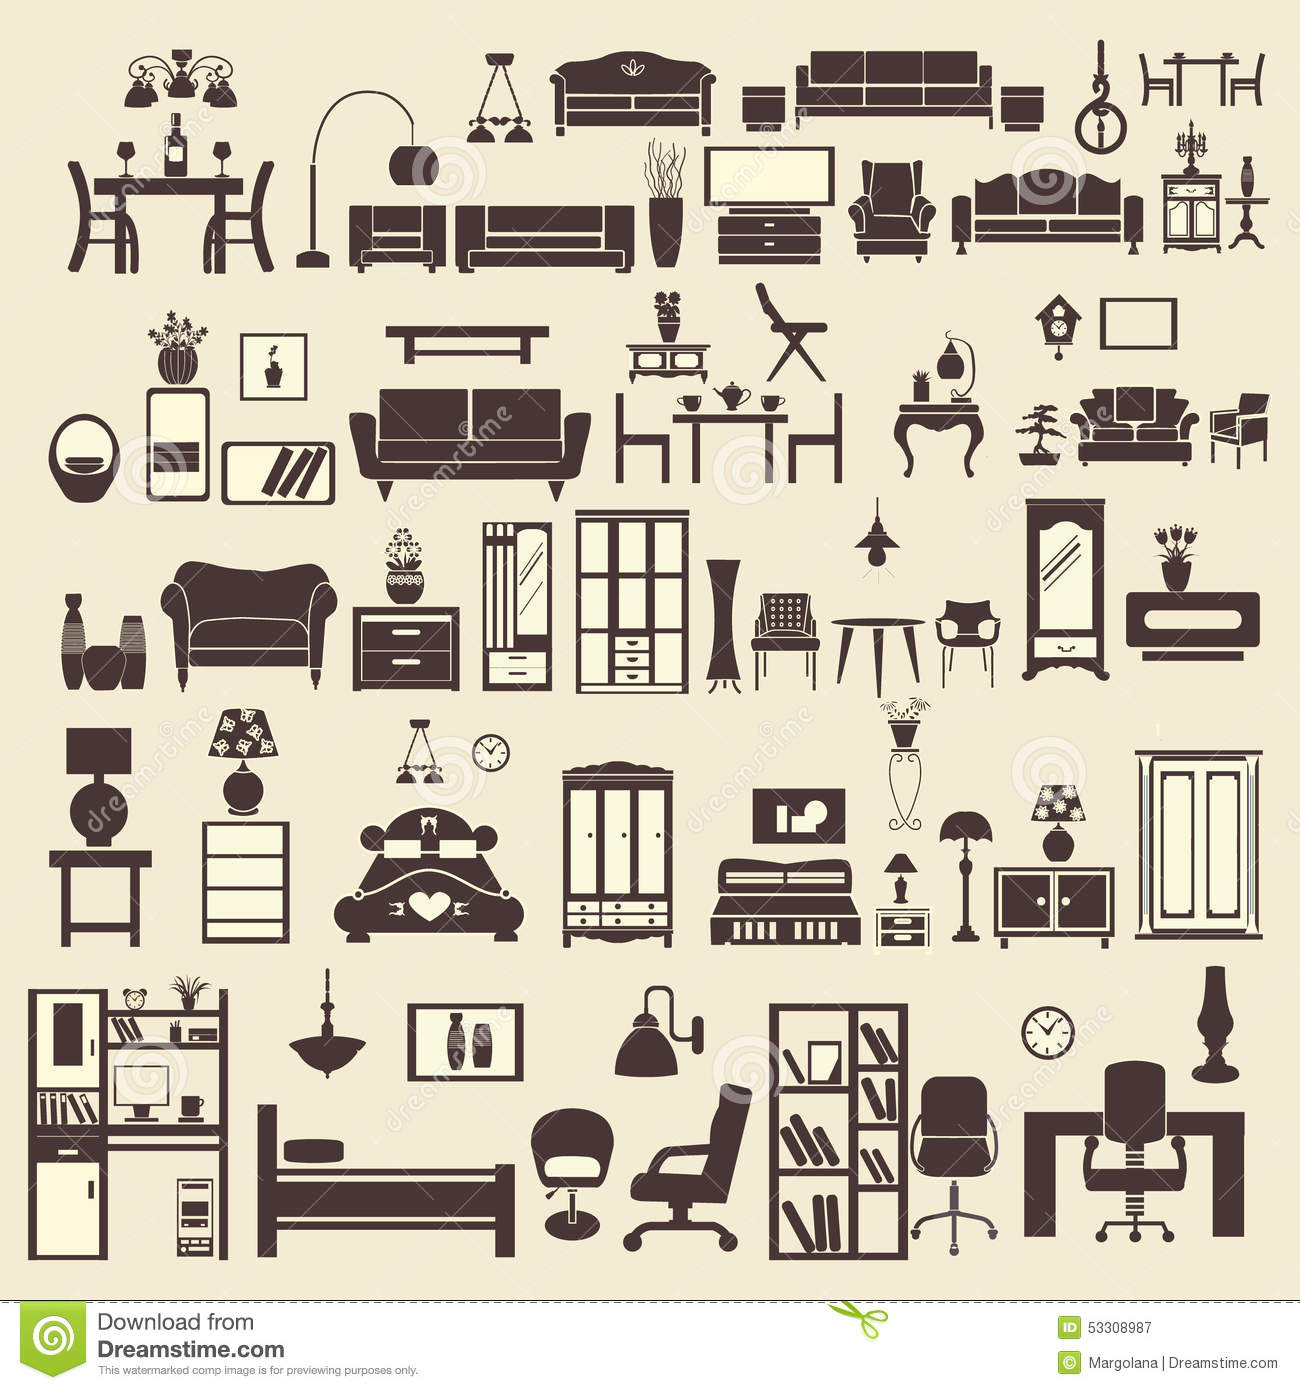 creative furniture icons set flat design. Creative Design Furniture Icons Set Interior- Illustration Creative Flat T